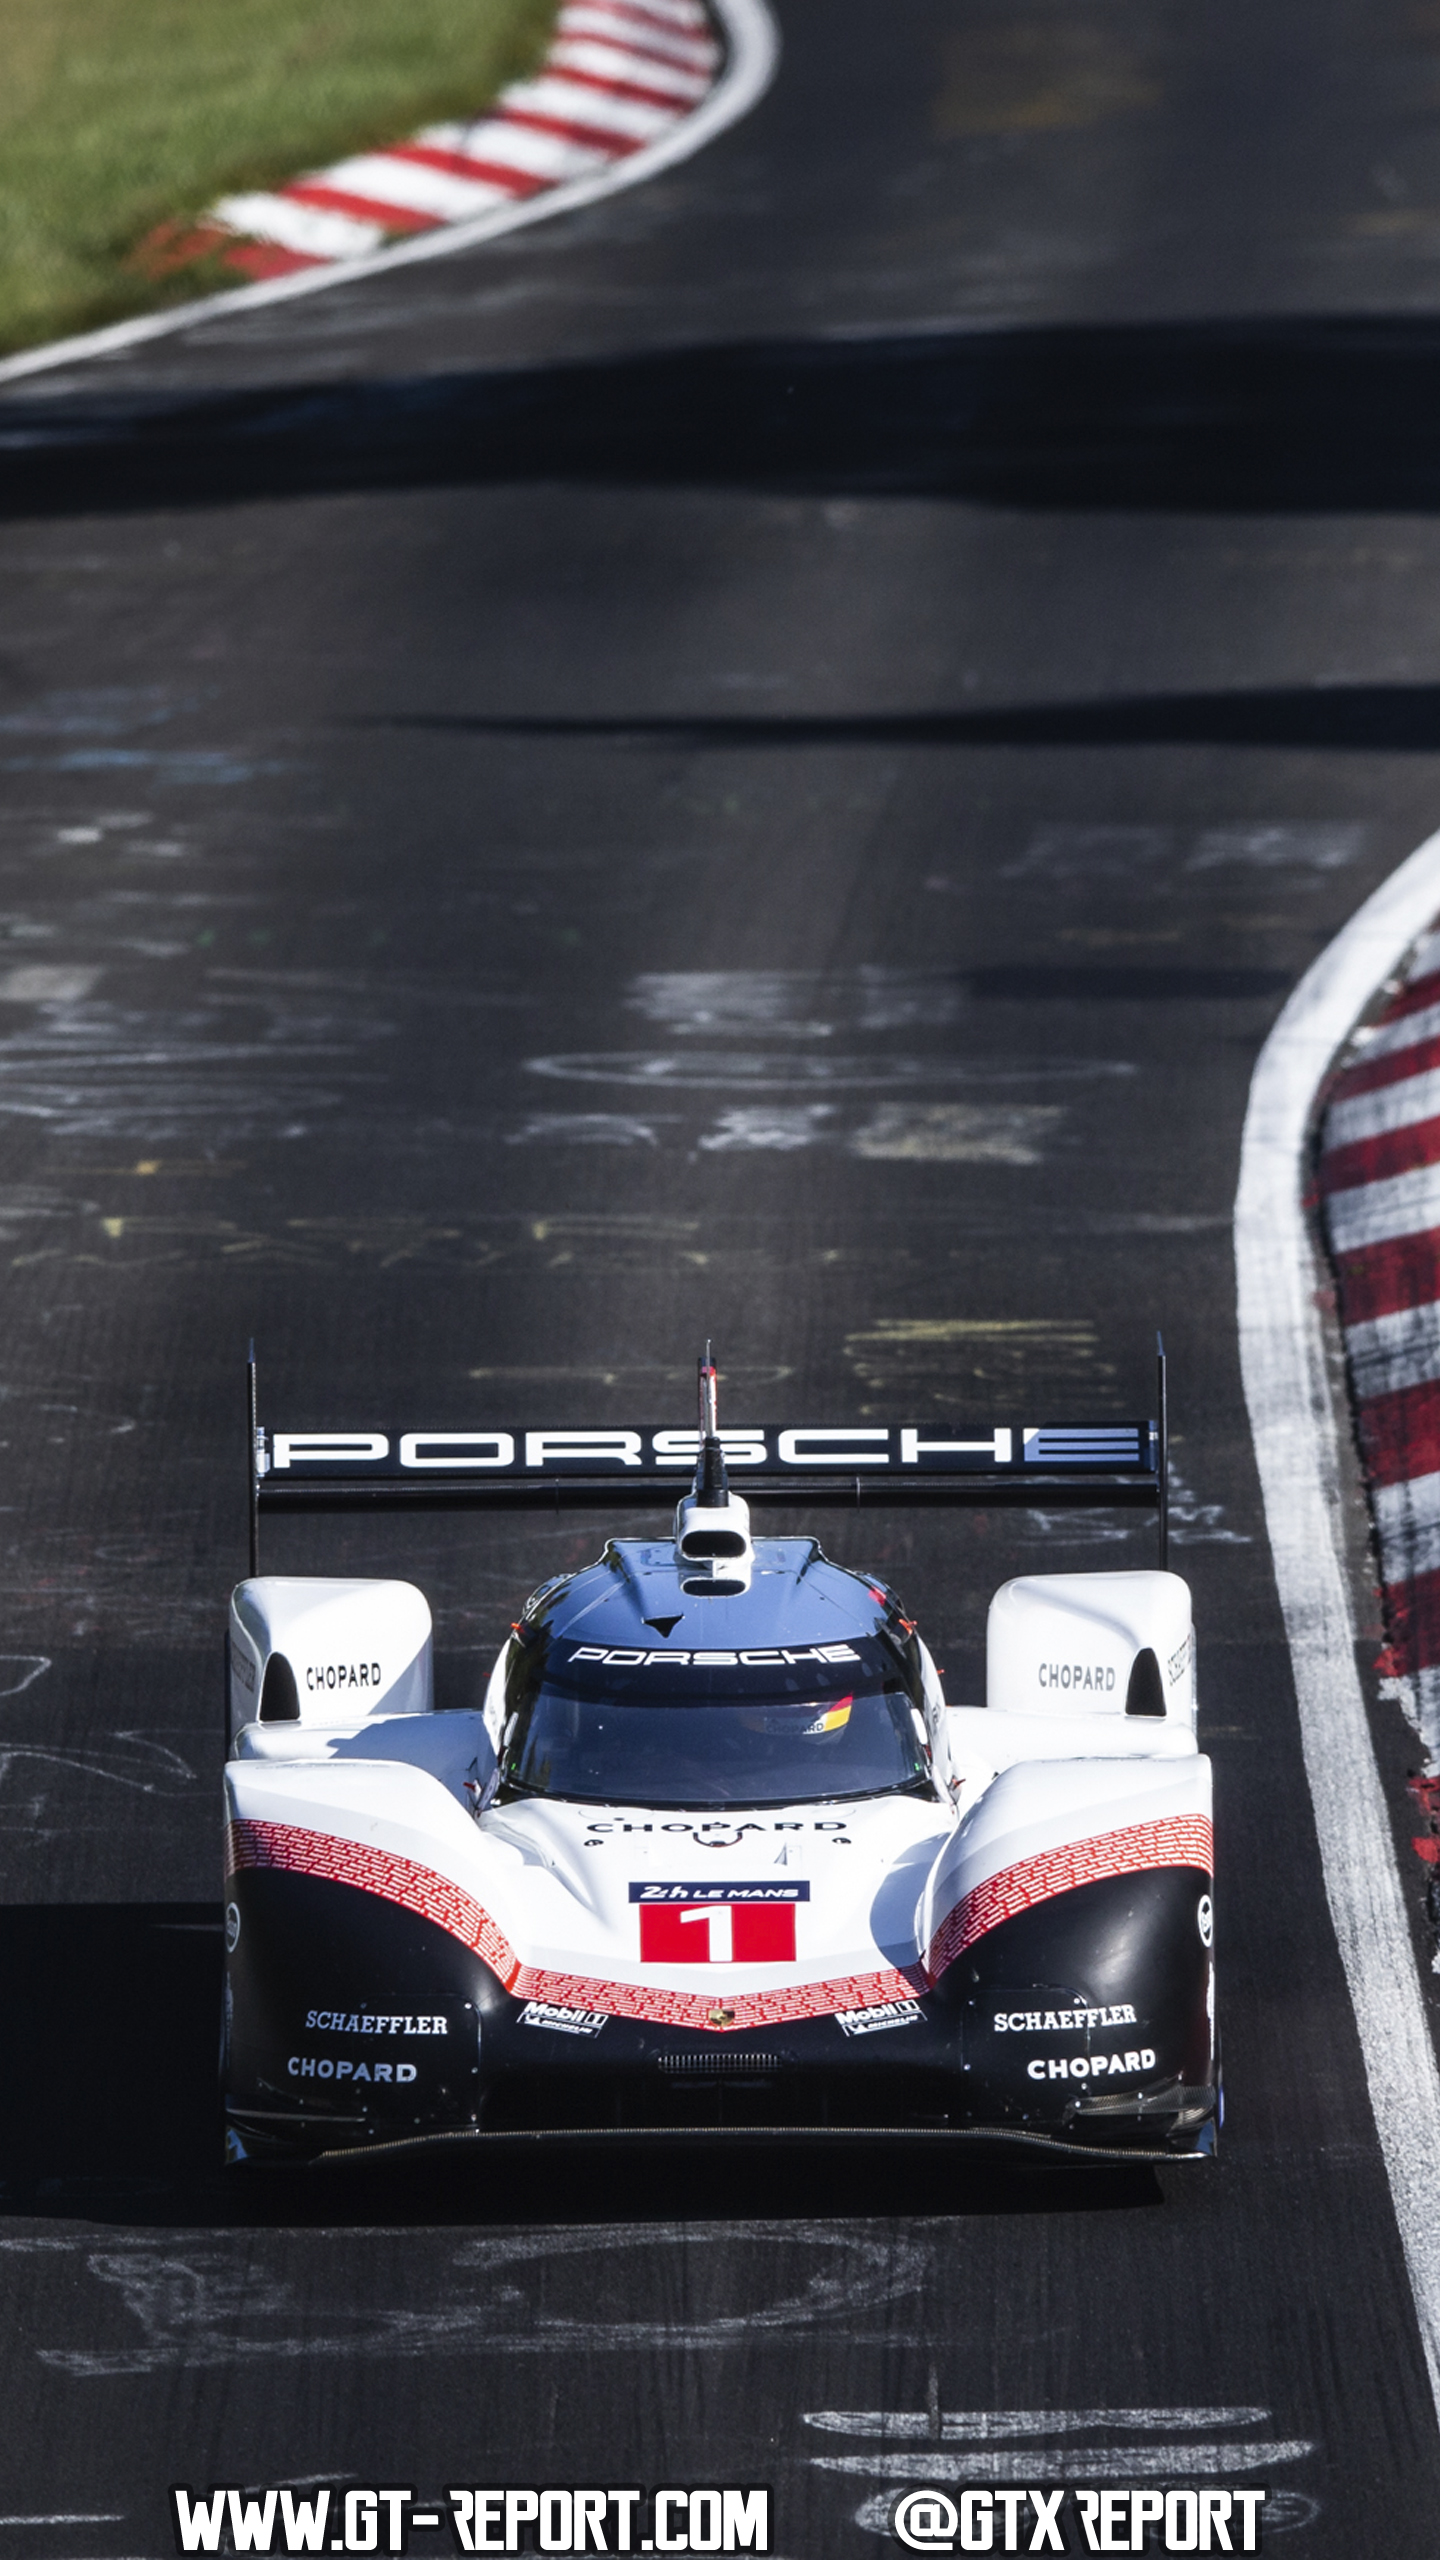 porsche 919 hybrid evo wallpaper | gt report